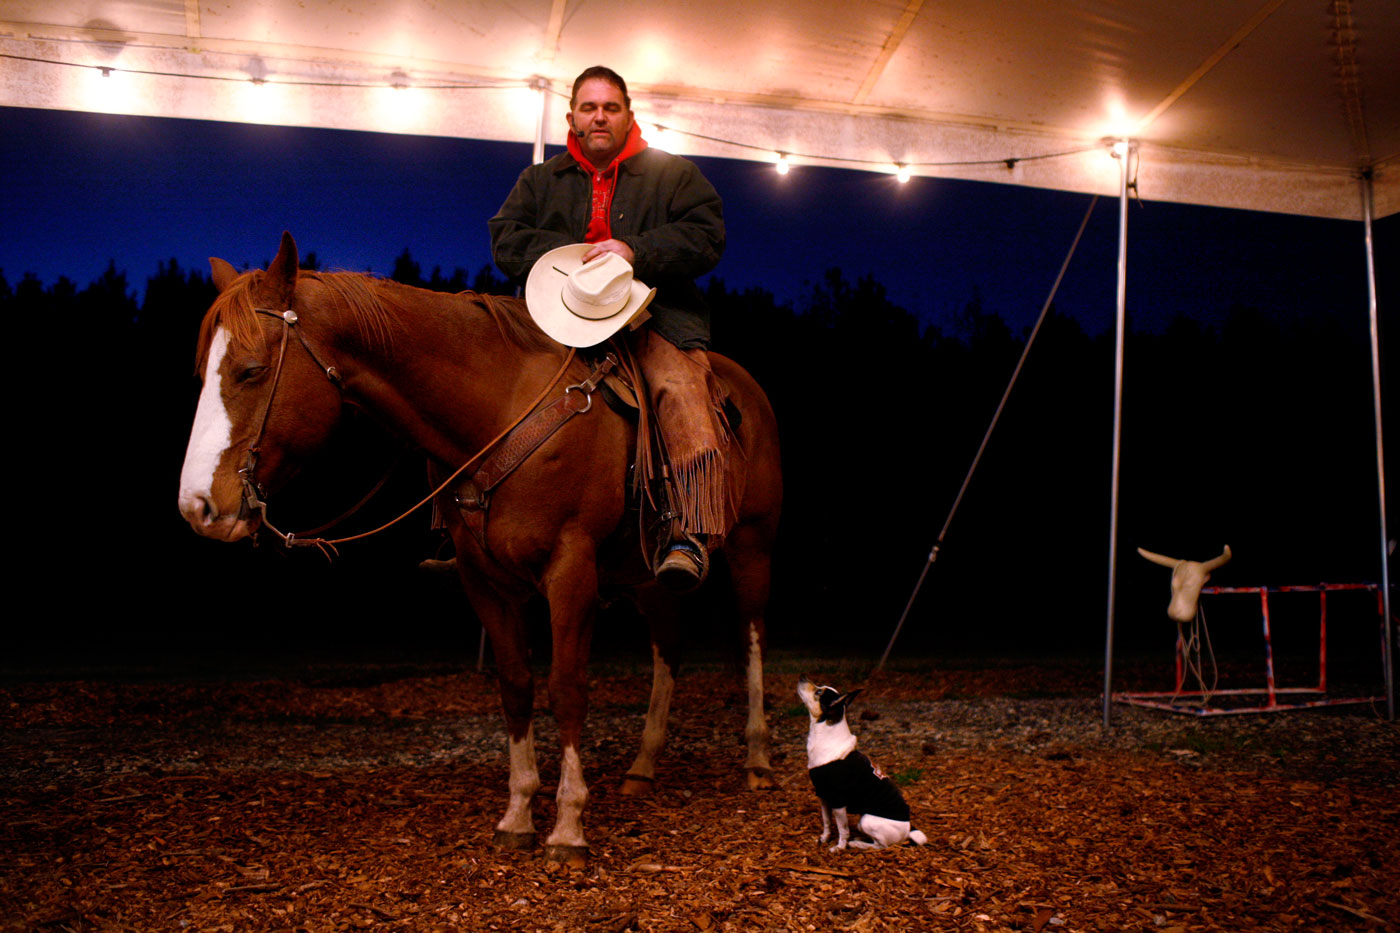 """Tim Kirkpatrick bows his head and slips off his cowboy hat. He begins to pray.   Below him, a small terrier mix named Sheriff Woody wags his tail and scampers in the dirt. Kirkpatrick, 40, is a part-time pastor of the Hickory Ridge Cowboy Church.   """"We started it so we could reach people with an outdoors mind,"""" he explains. """"There's a lot of farmers, horse people and animal people around here. This is the avenue that we use to reach them.""""   Members meet Saturday nights in a large tent set up on the grounds of Hickory Ridge Community Church in Chesapeake.   Kirkpatrick says he caters to Christians who aren't comfortable with traditional services. He recalls one uneasy congregant who told him, """"If I can come with manure on my boots, wear my blue jeans and if I don't have to put my teeth in, then I'll come."""" """"It's God leading it, I'm just along for the ride, said Kirkpatrick. """"These are my people, and it's a great way to reach them for Christ."""""""